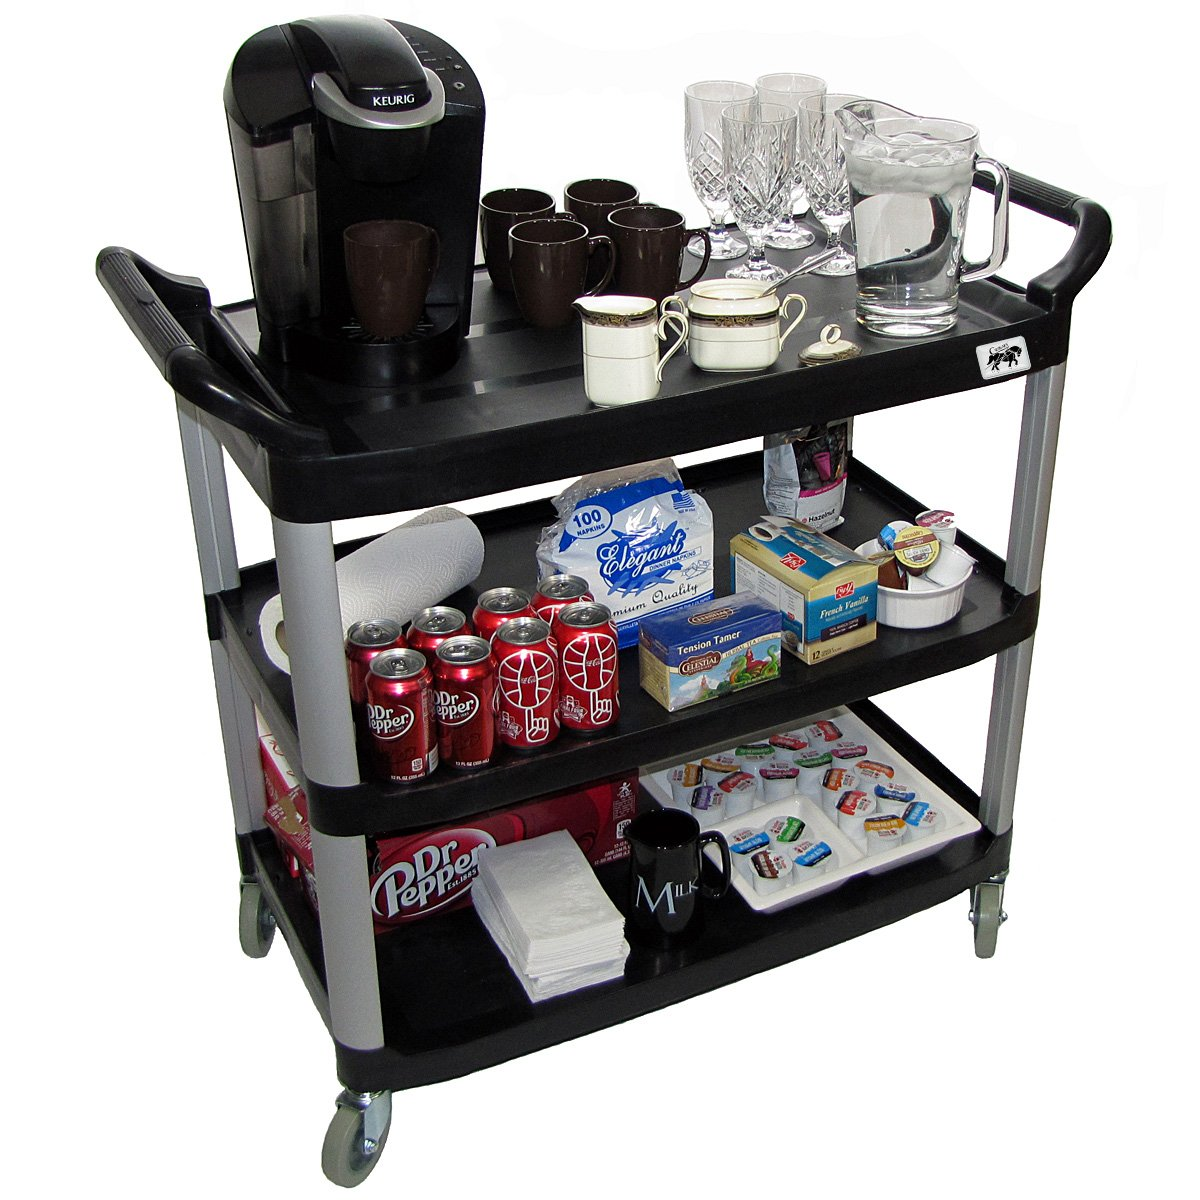 Crayata Serving and Bus Cart, Kitchen Food Service 3 Tier Heavy Duty Plastic Beverage and Coffee Transport Cart for Restaurants, Black by Crayata